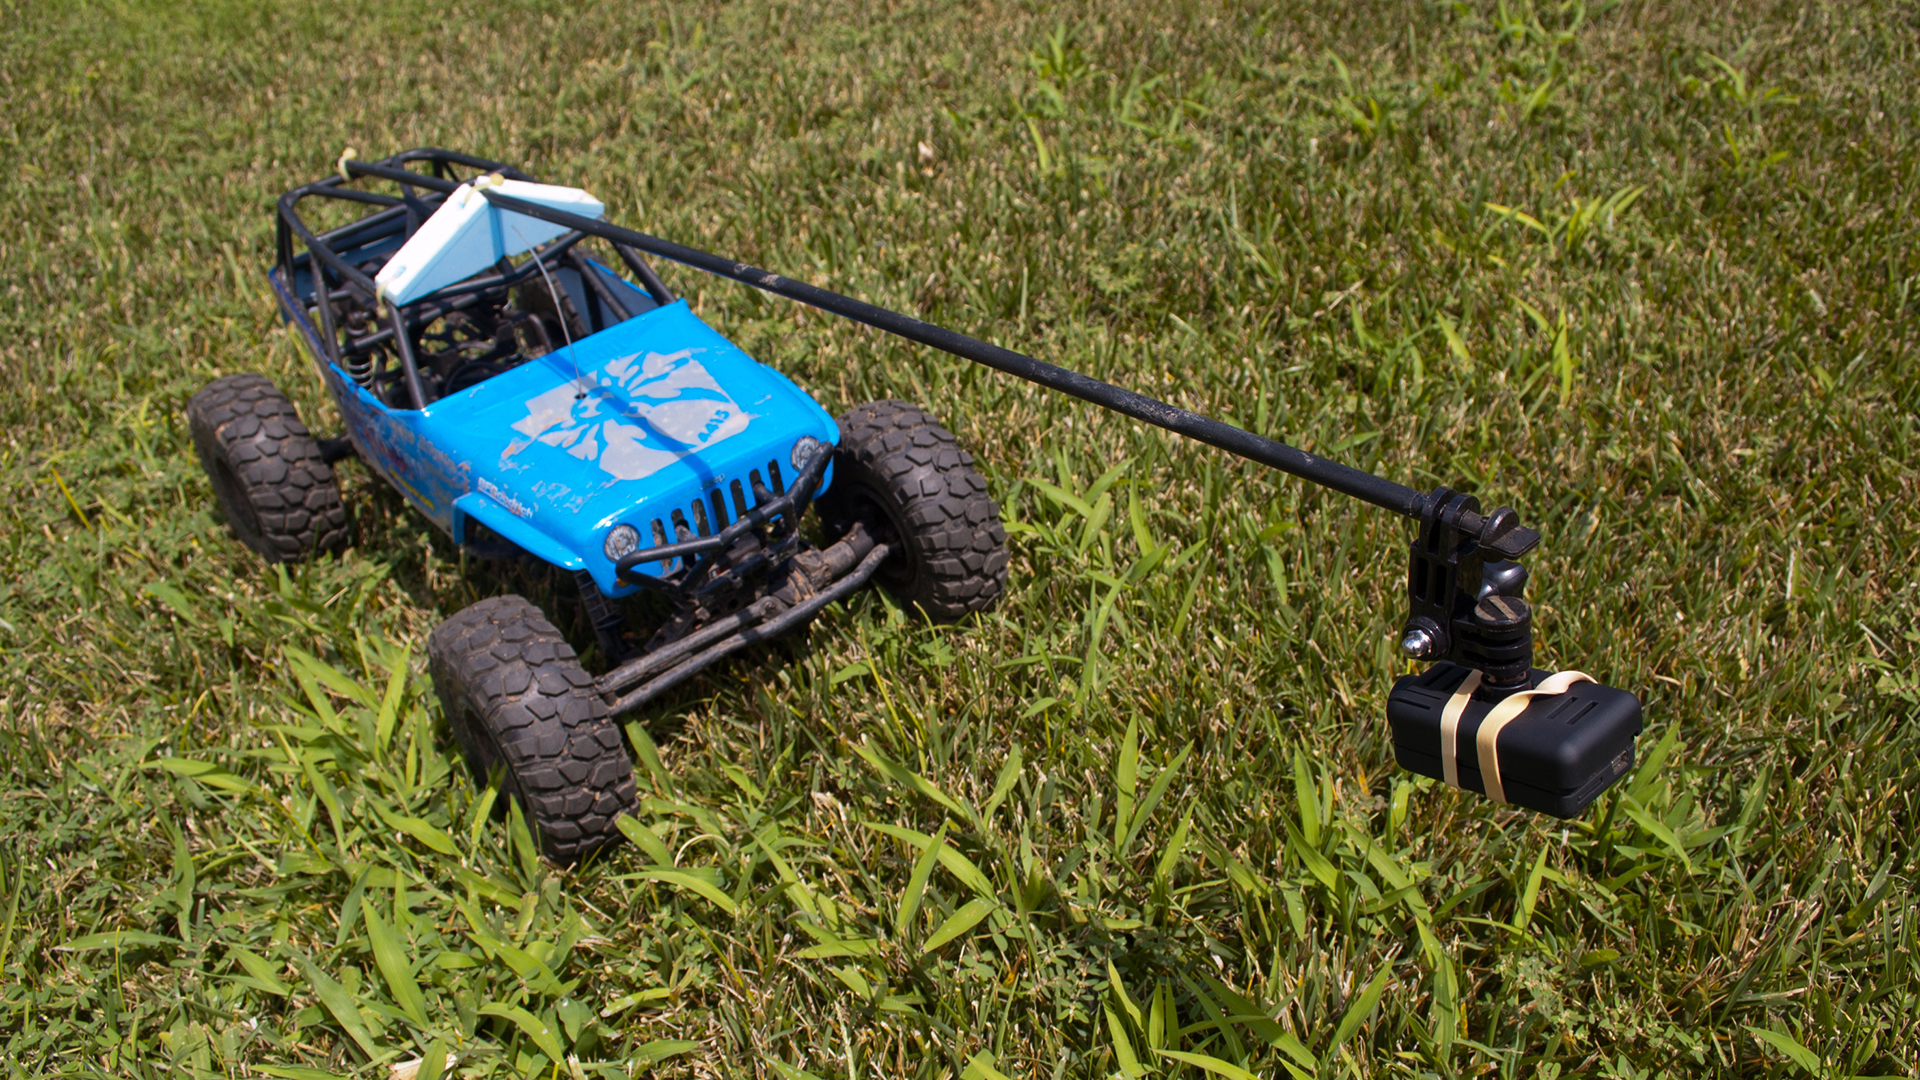 How To Get Into Hobby Rc Mounting Action Cameras Tested Very Simple Radio Control R C Onboard Filming With Cars Is Difficult Due The Rough Ride I Found Some Success Using A Mobius Camera On Boom This Rock Crawler